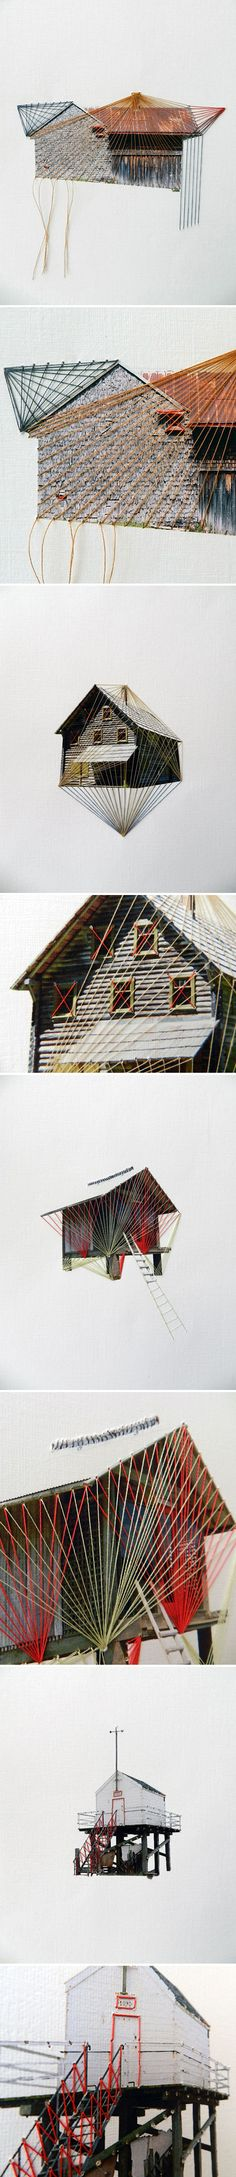 Lonely Houses series by Hagar Vardimon-van Heummen - thread on paper http://www.happy-red-fish.com/art/lonley-houses/